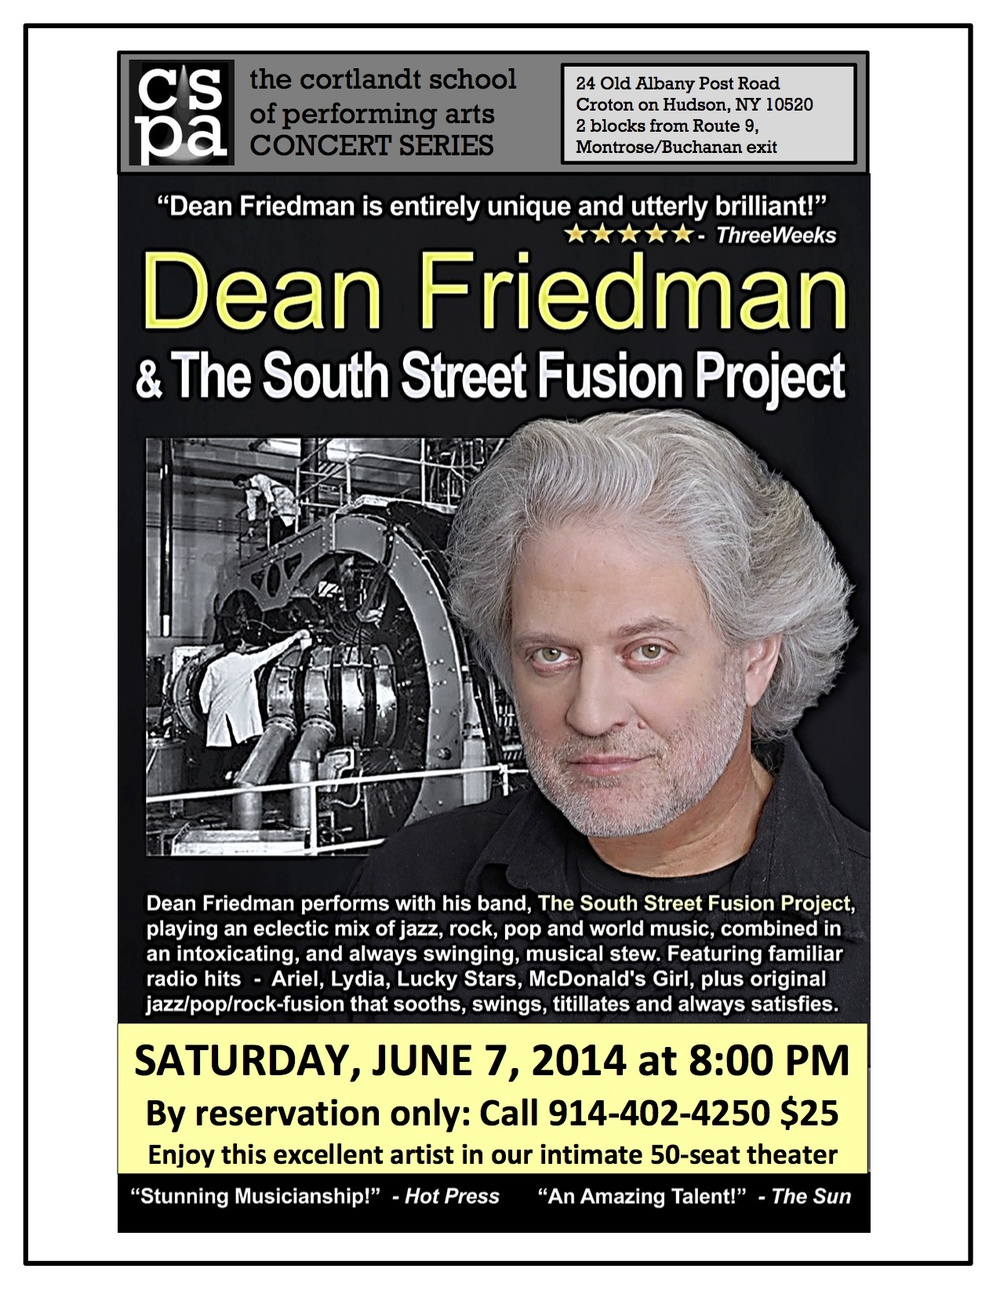 Dean Friedman, 70's  pop /rock star performed live at CSPA!  What a thrill.